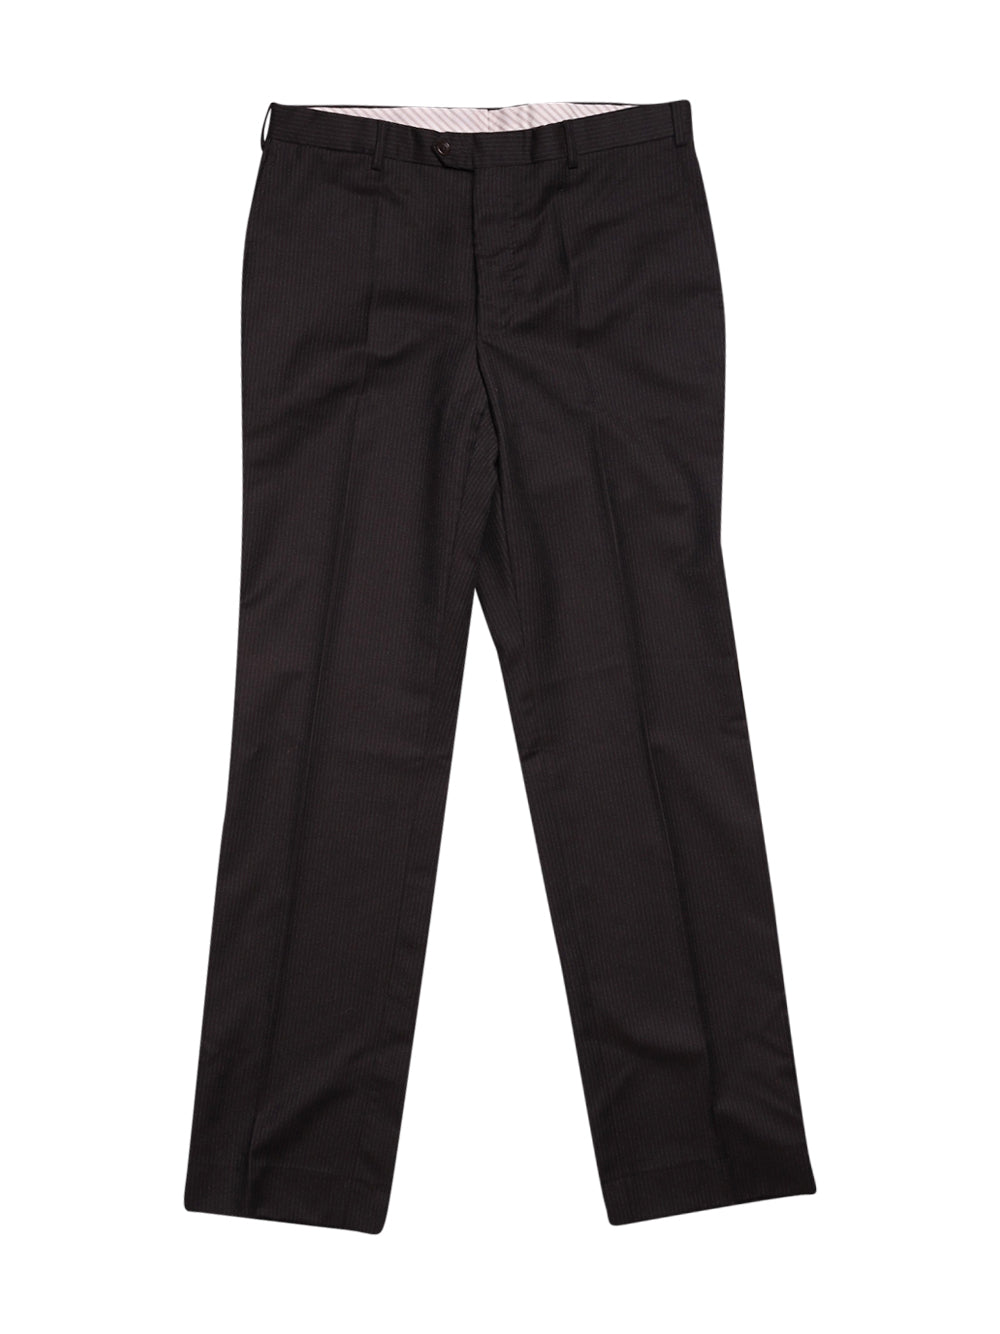 Front photo of Preloved Nardelli Black Man's trousers - size 40/L